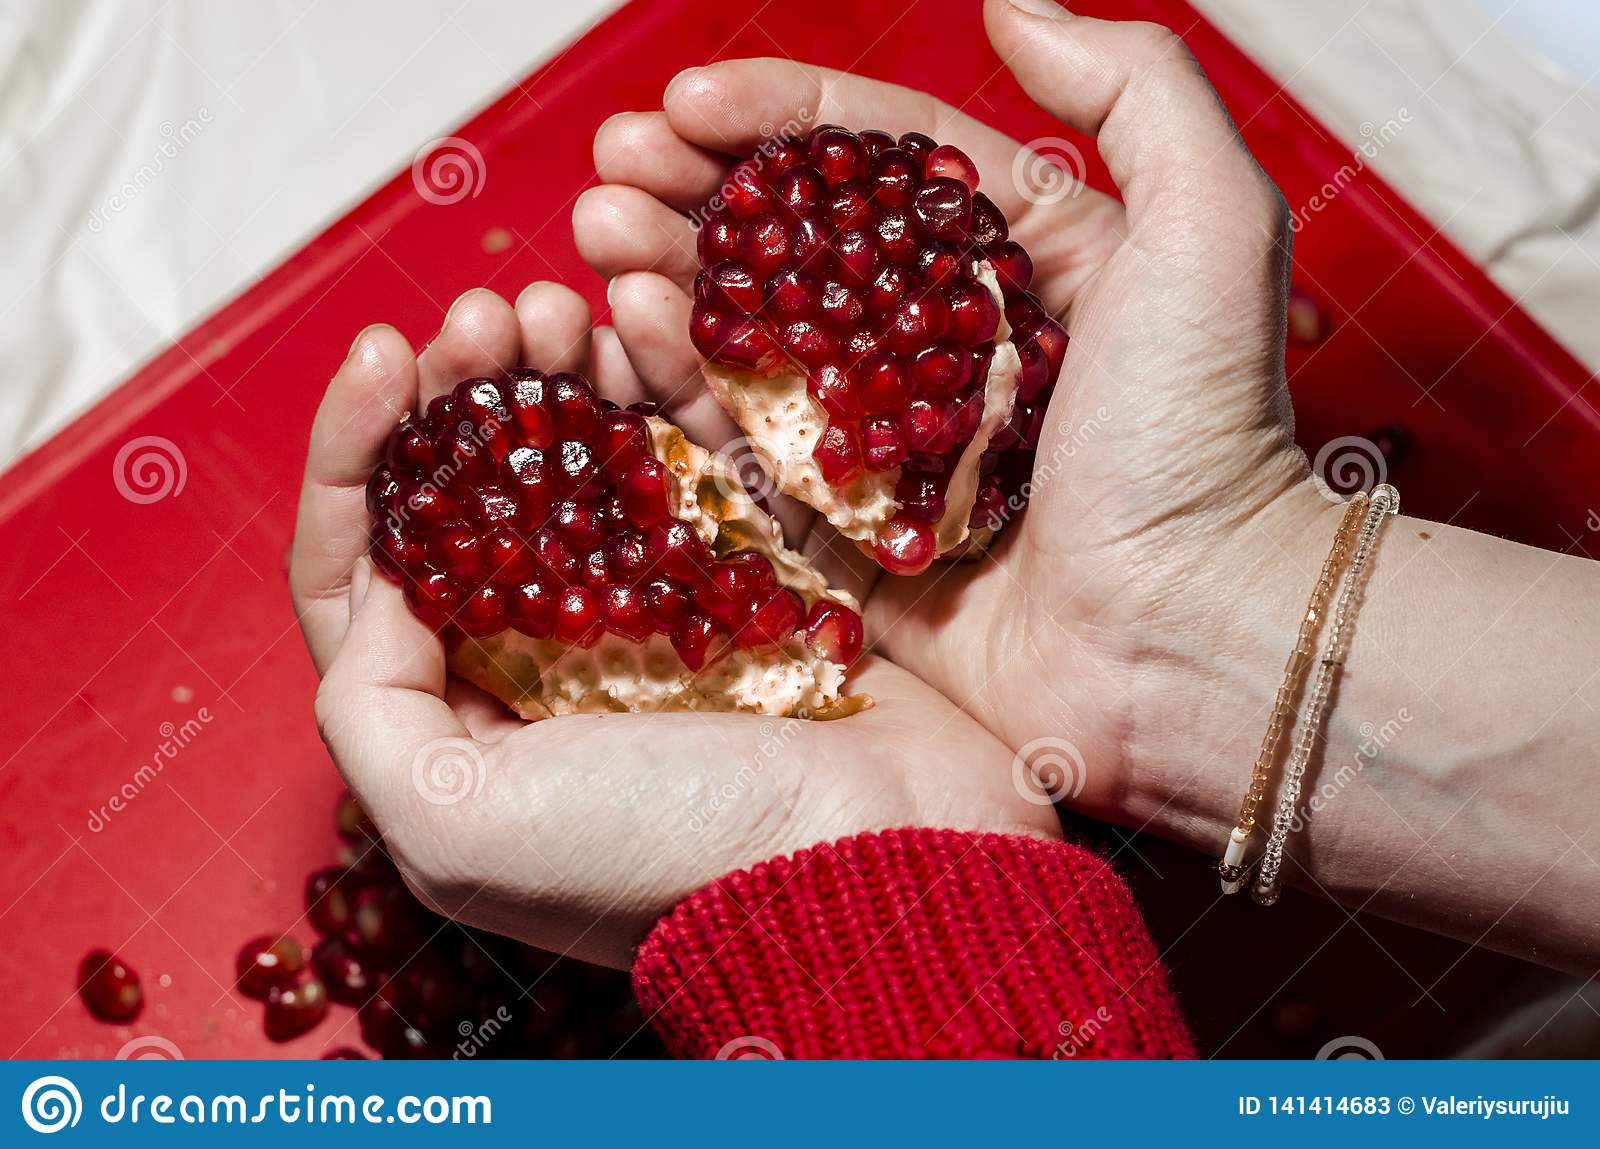 Hands making a heart of pomegranate pieces on the red cutting board